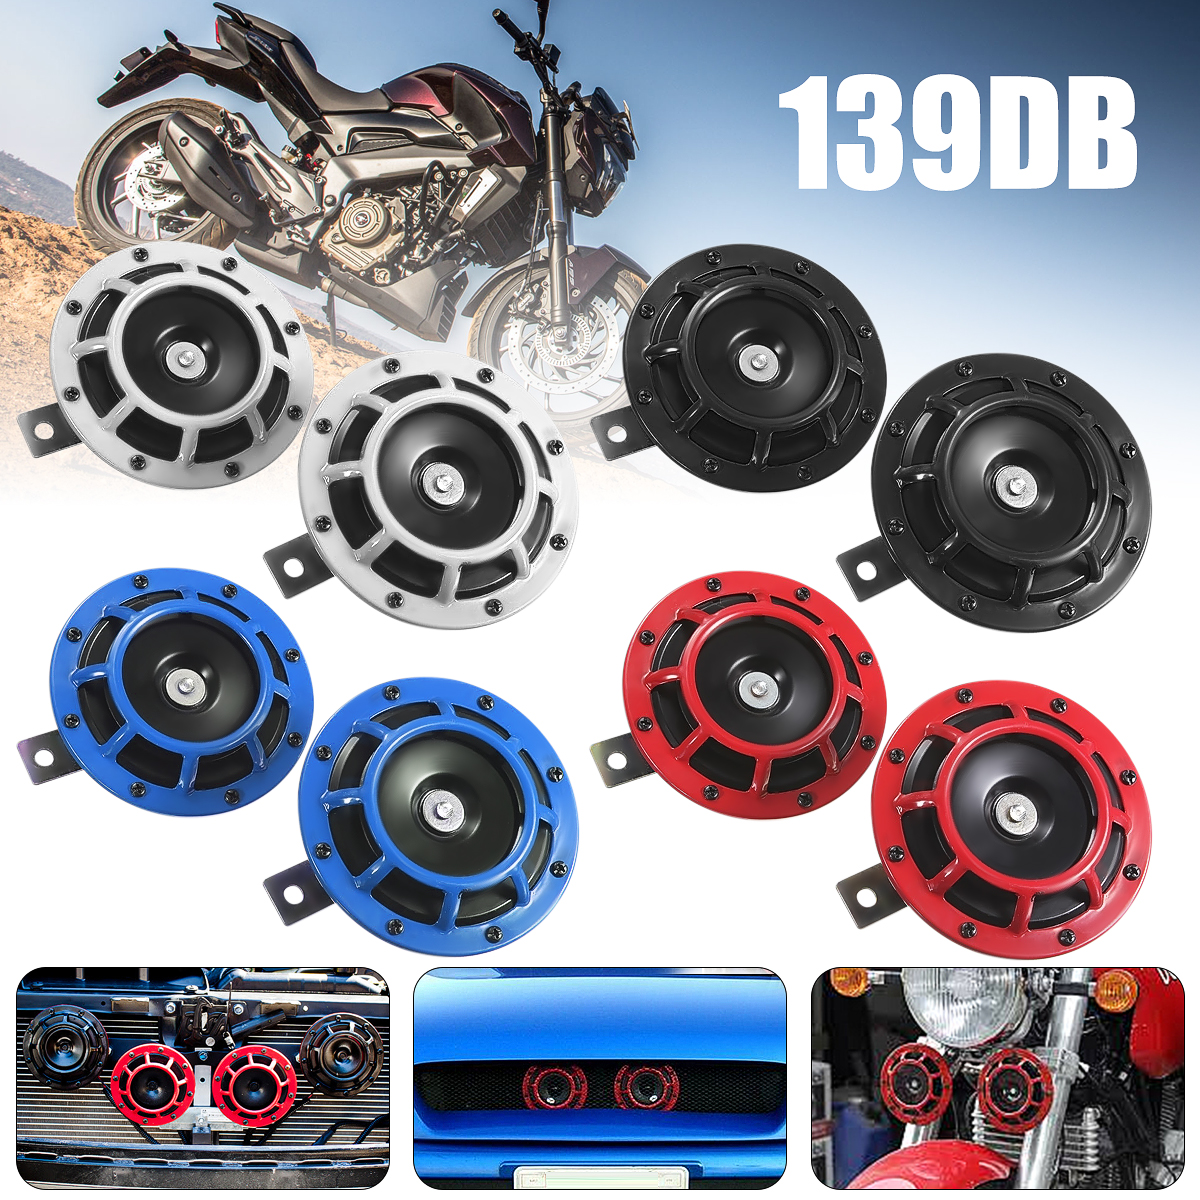 все цены на Universal Motorcycle Car Siren Dual Tone Electric Pump Loud Air Horn 12V 139db Off-road Super Loud Compact Electric Blast Tone